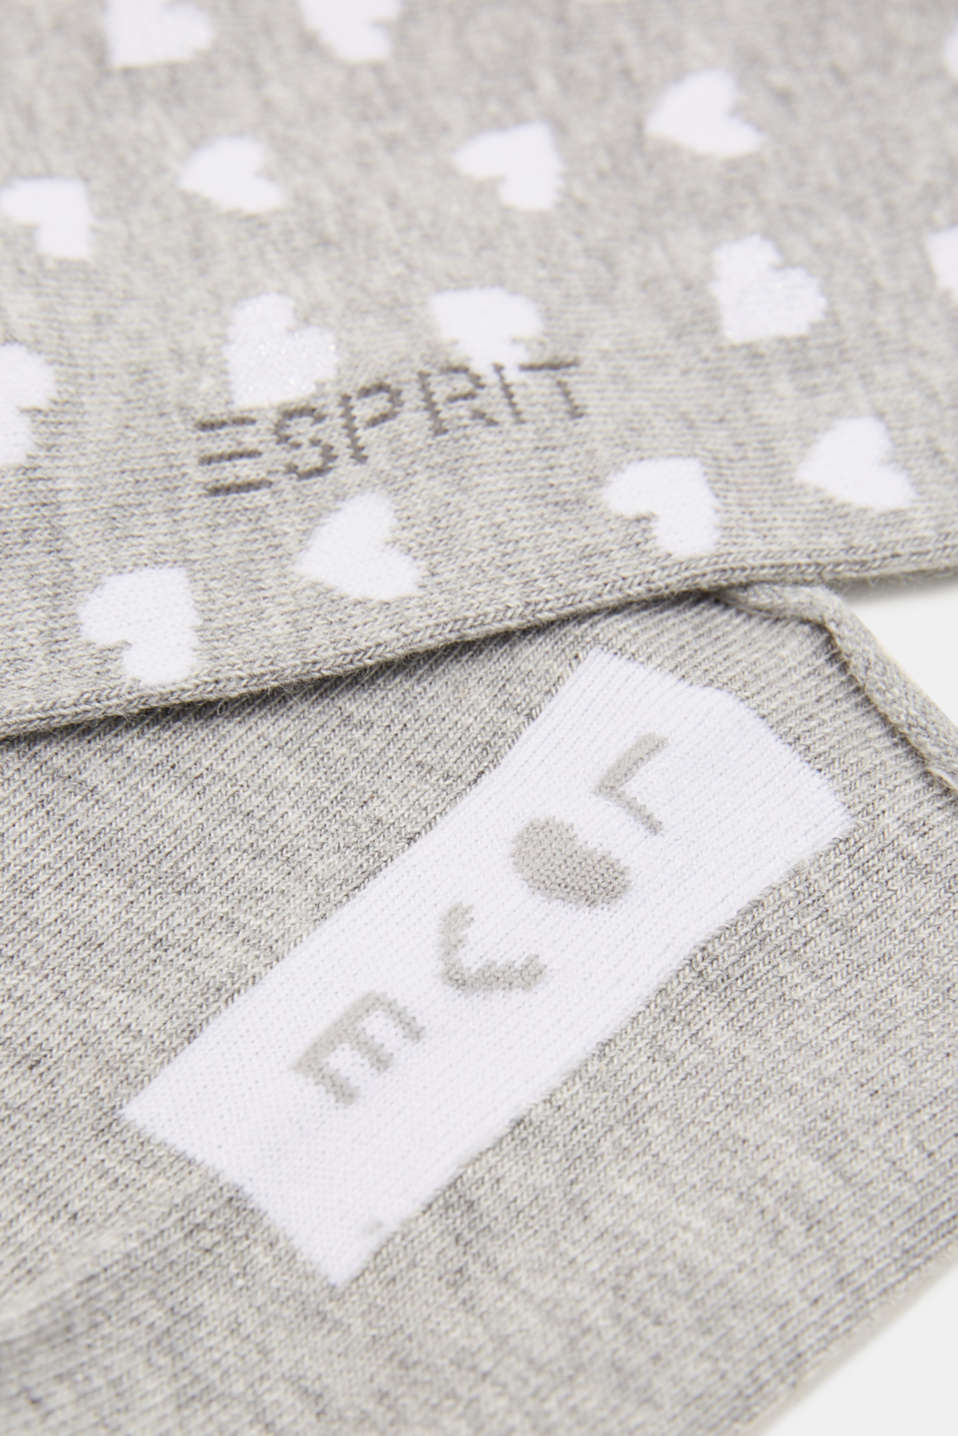 In a double pack: Socks with intarsia hearts, LIGHT GREY, detail image number 2